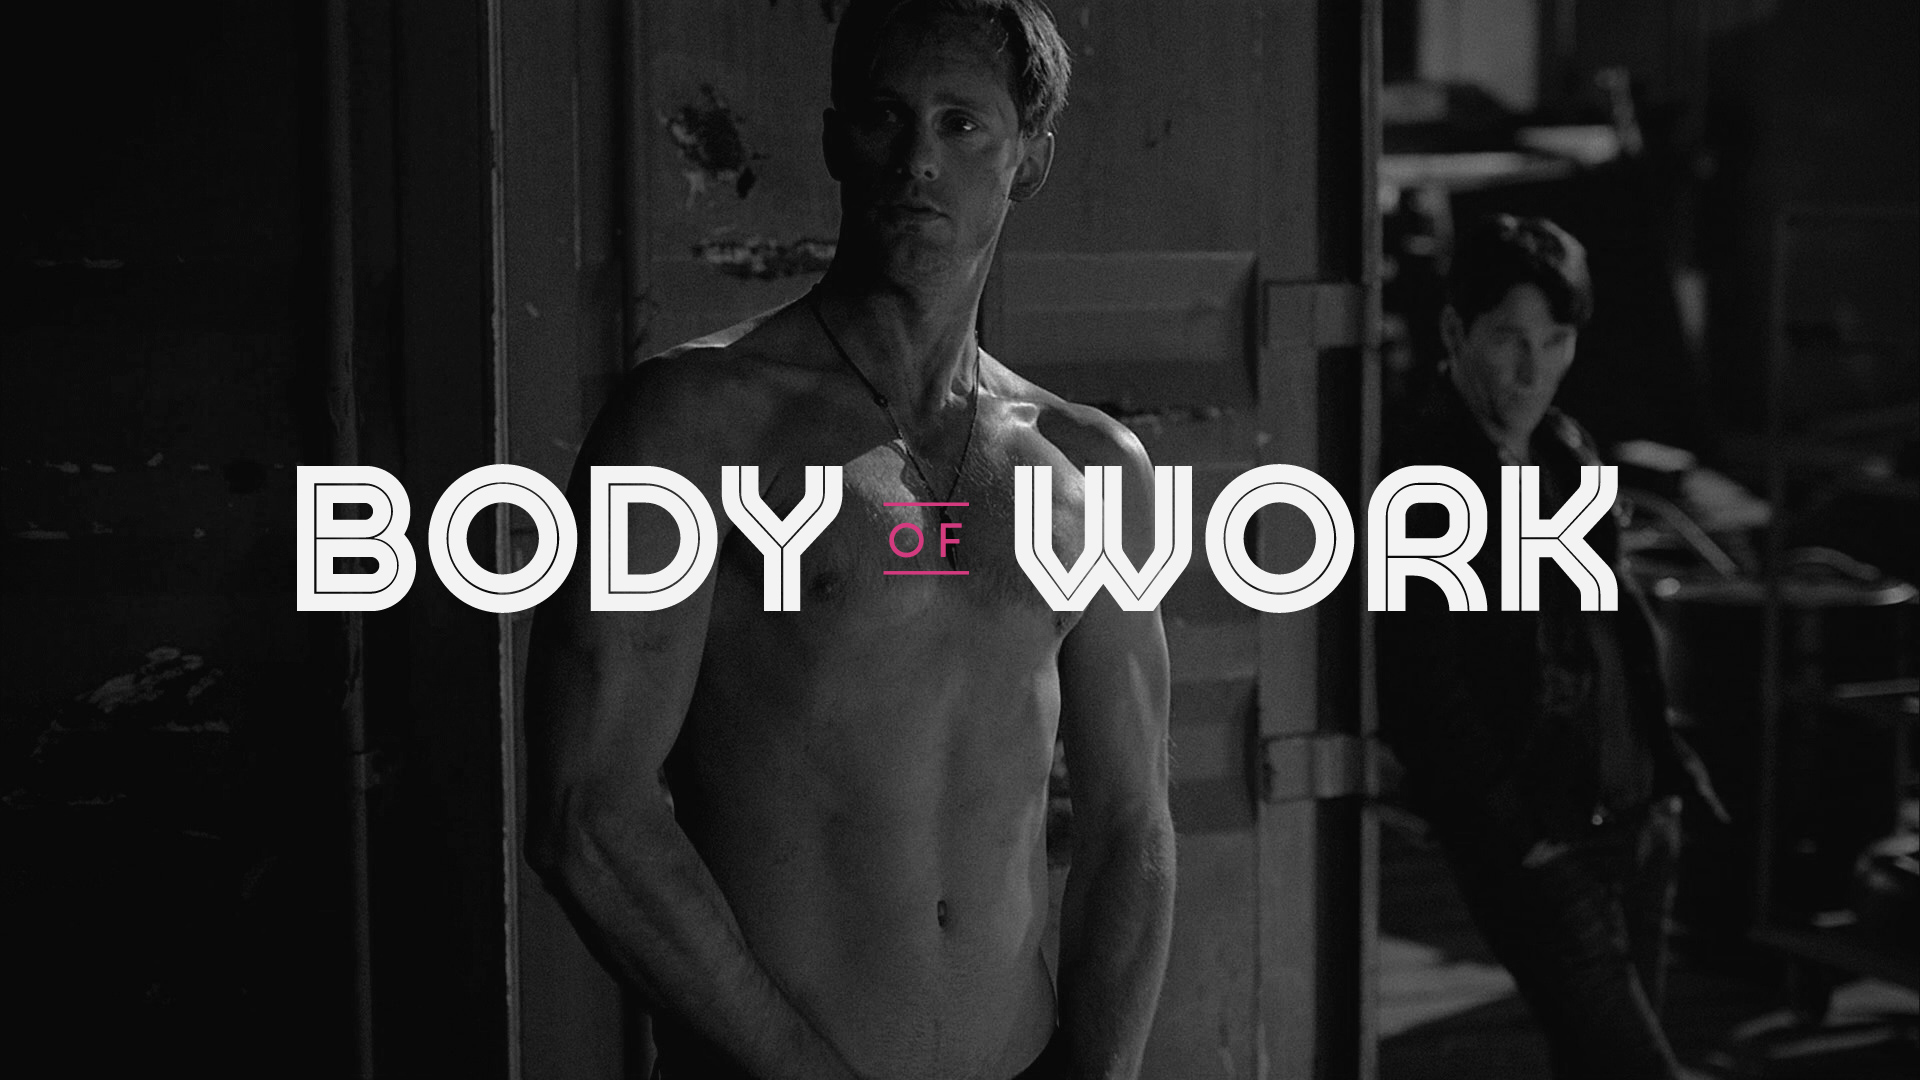 Body of Work: Alexander Skarsgård